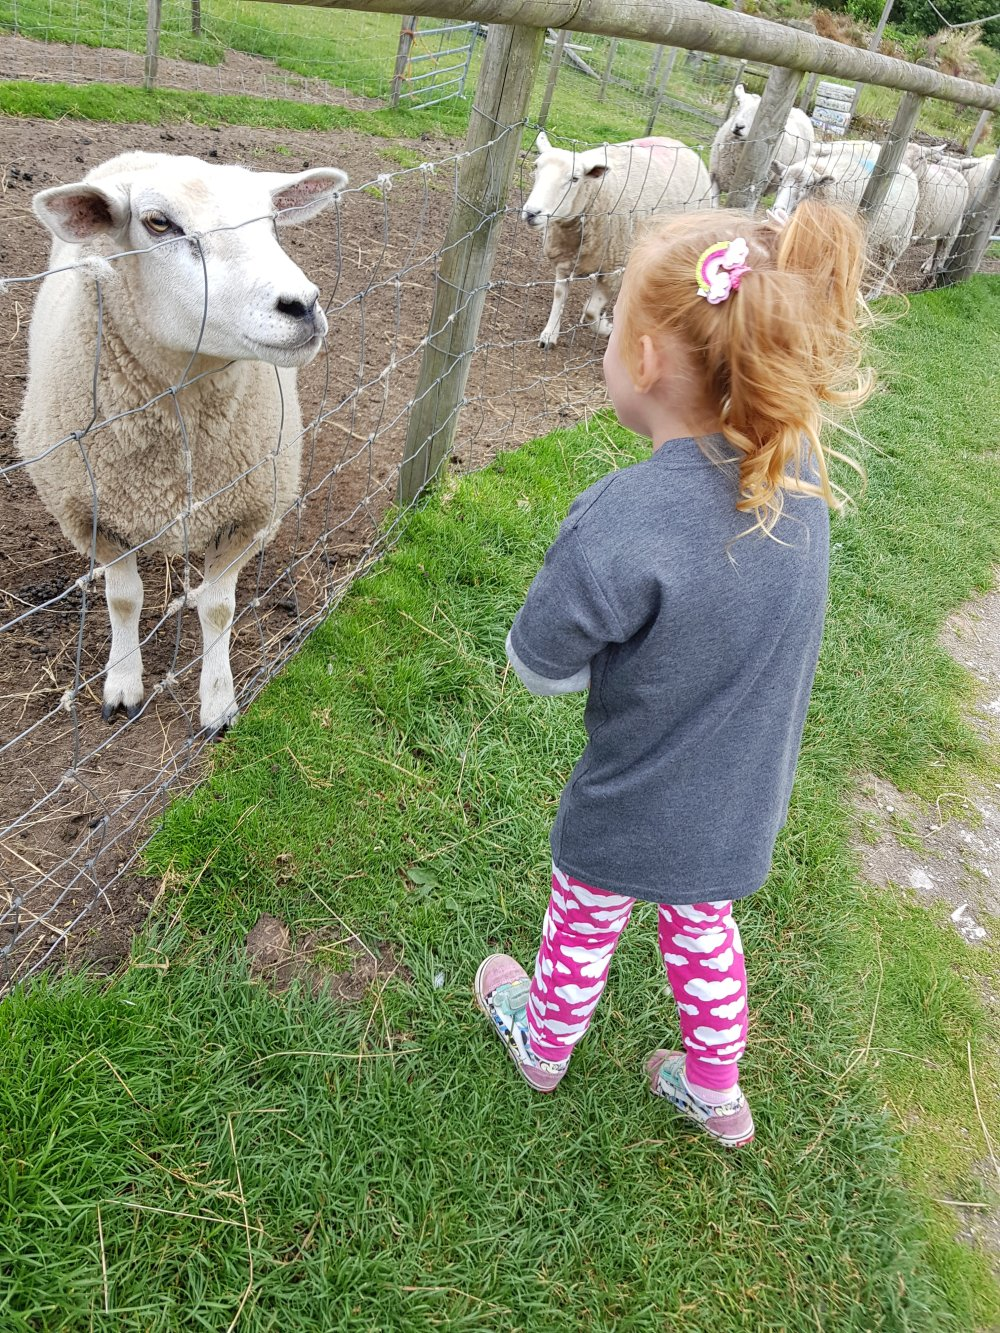 Feeding the sheep at Matlock Farm Park